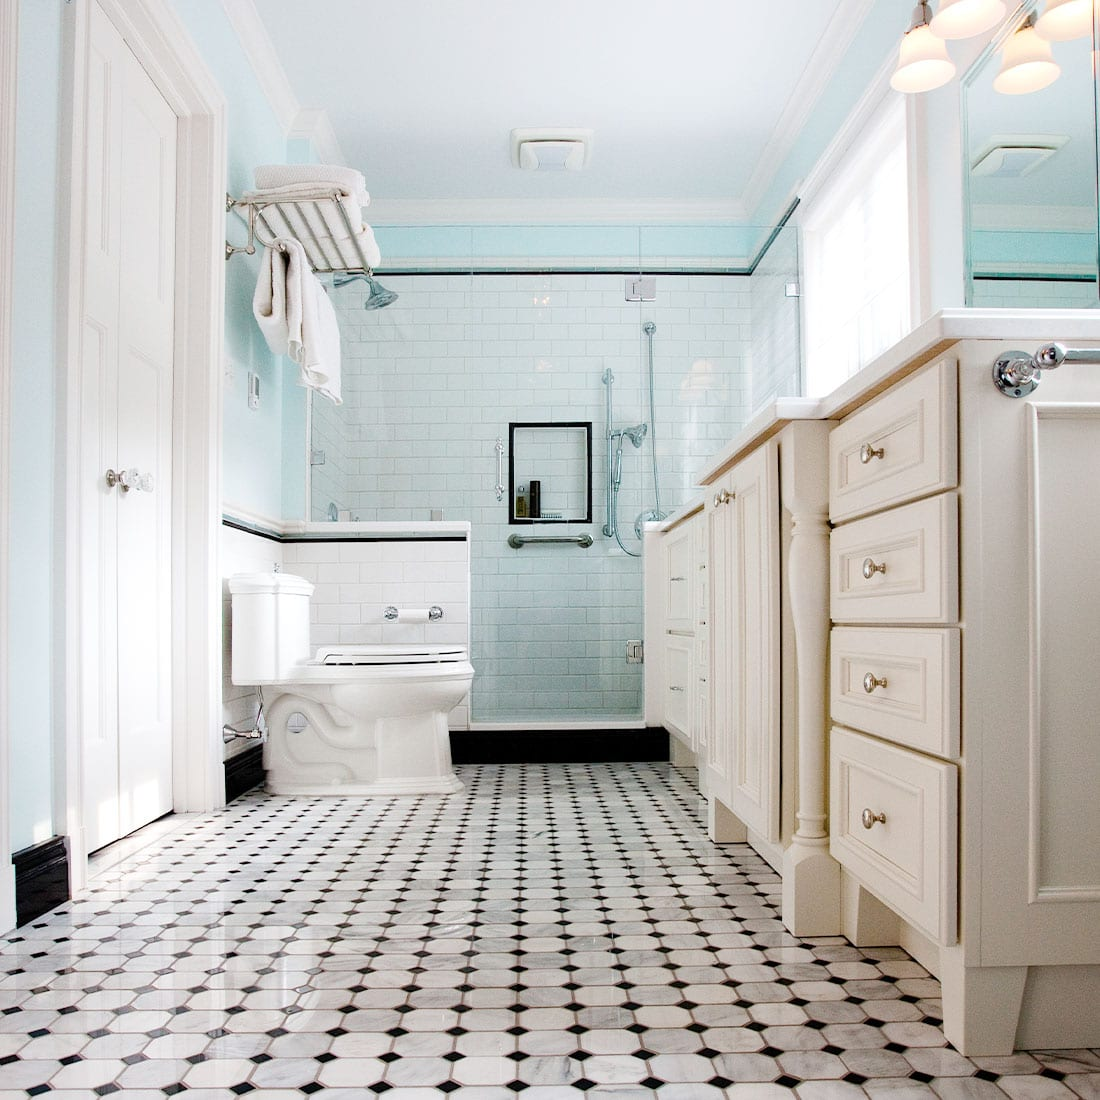 White and black bath with teal accents in renovated bath